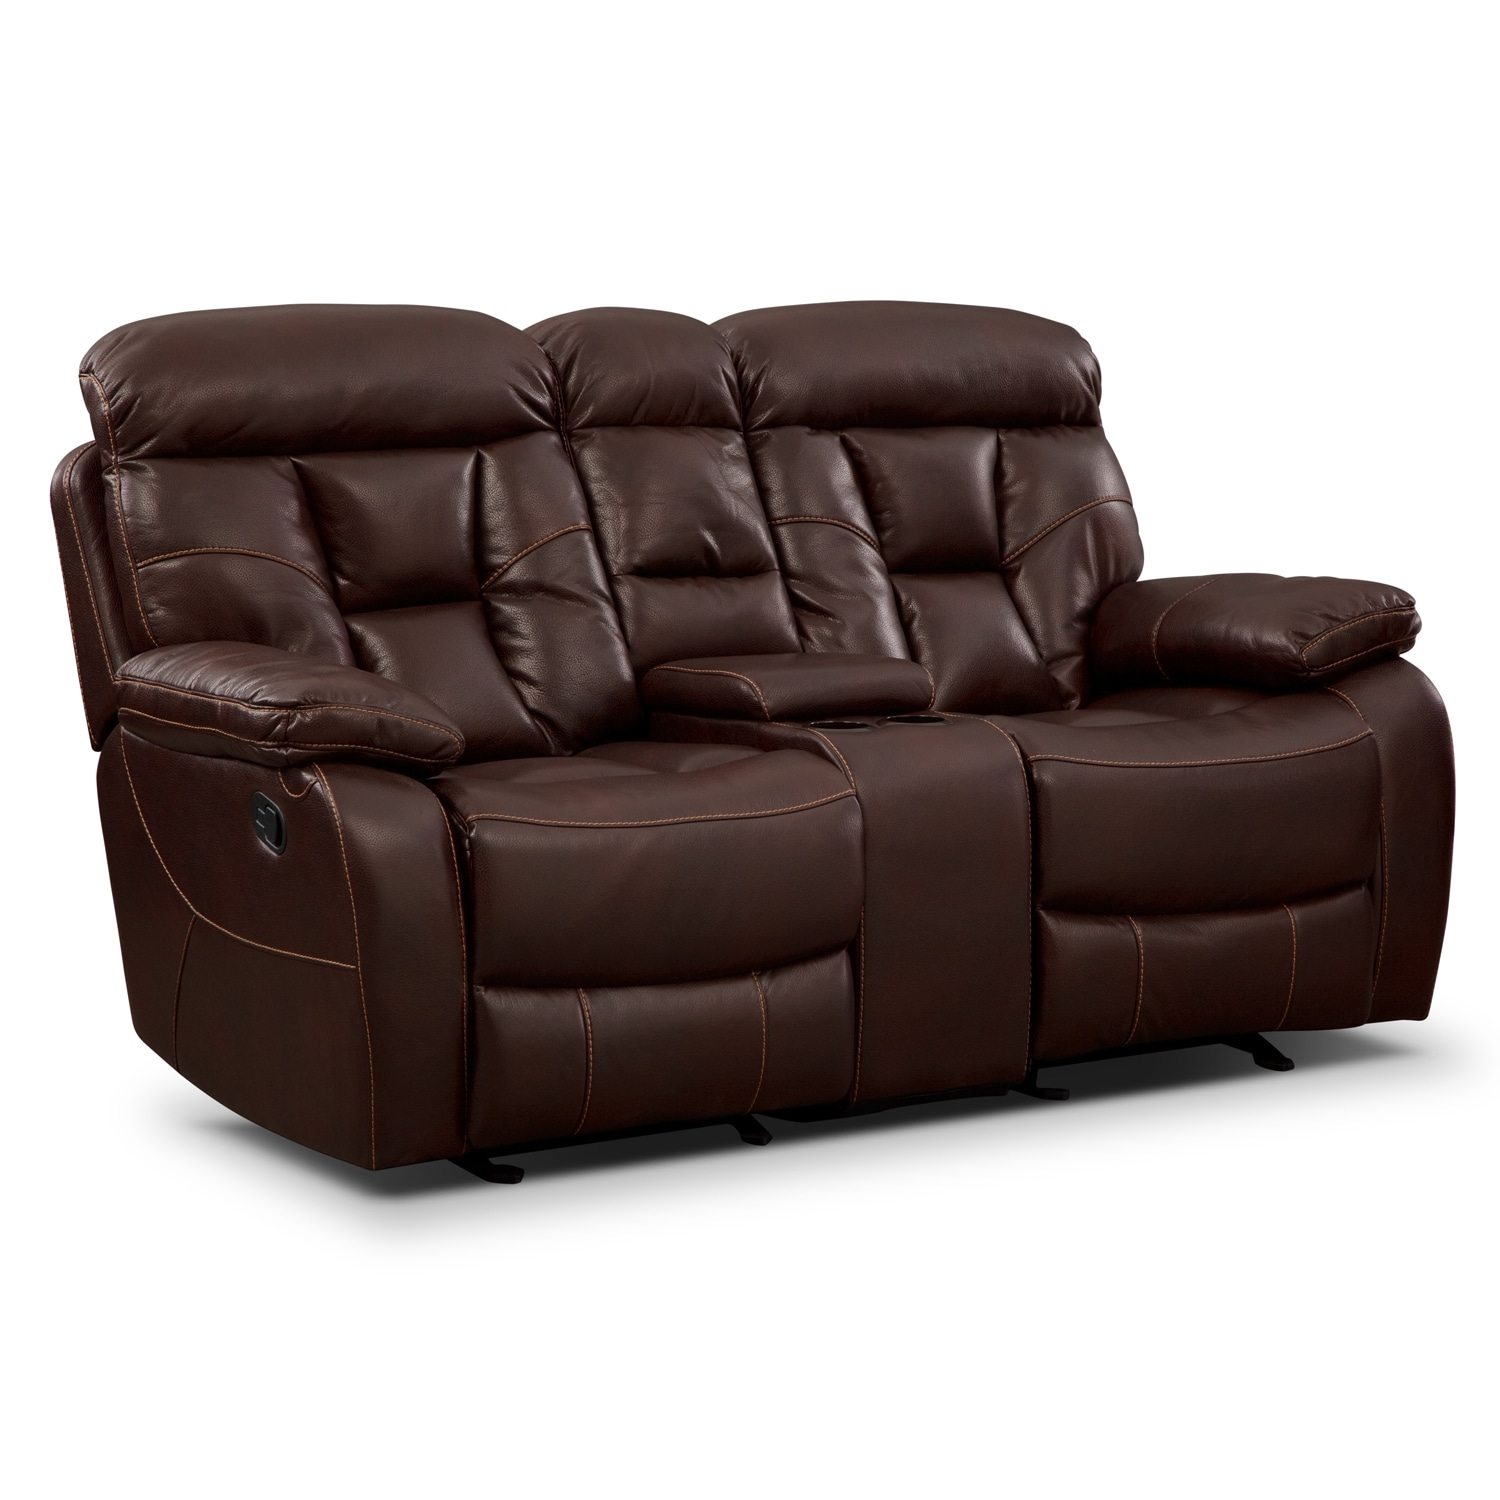 Dakota Glider Reclining Loveseat with Console